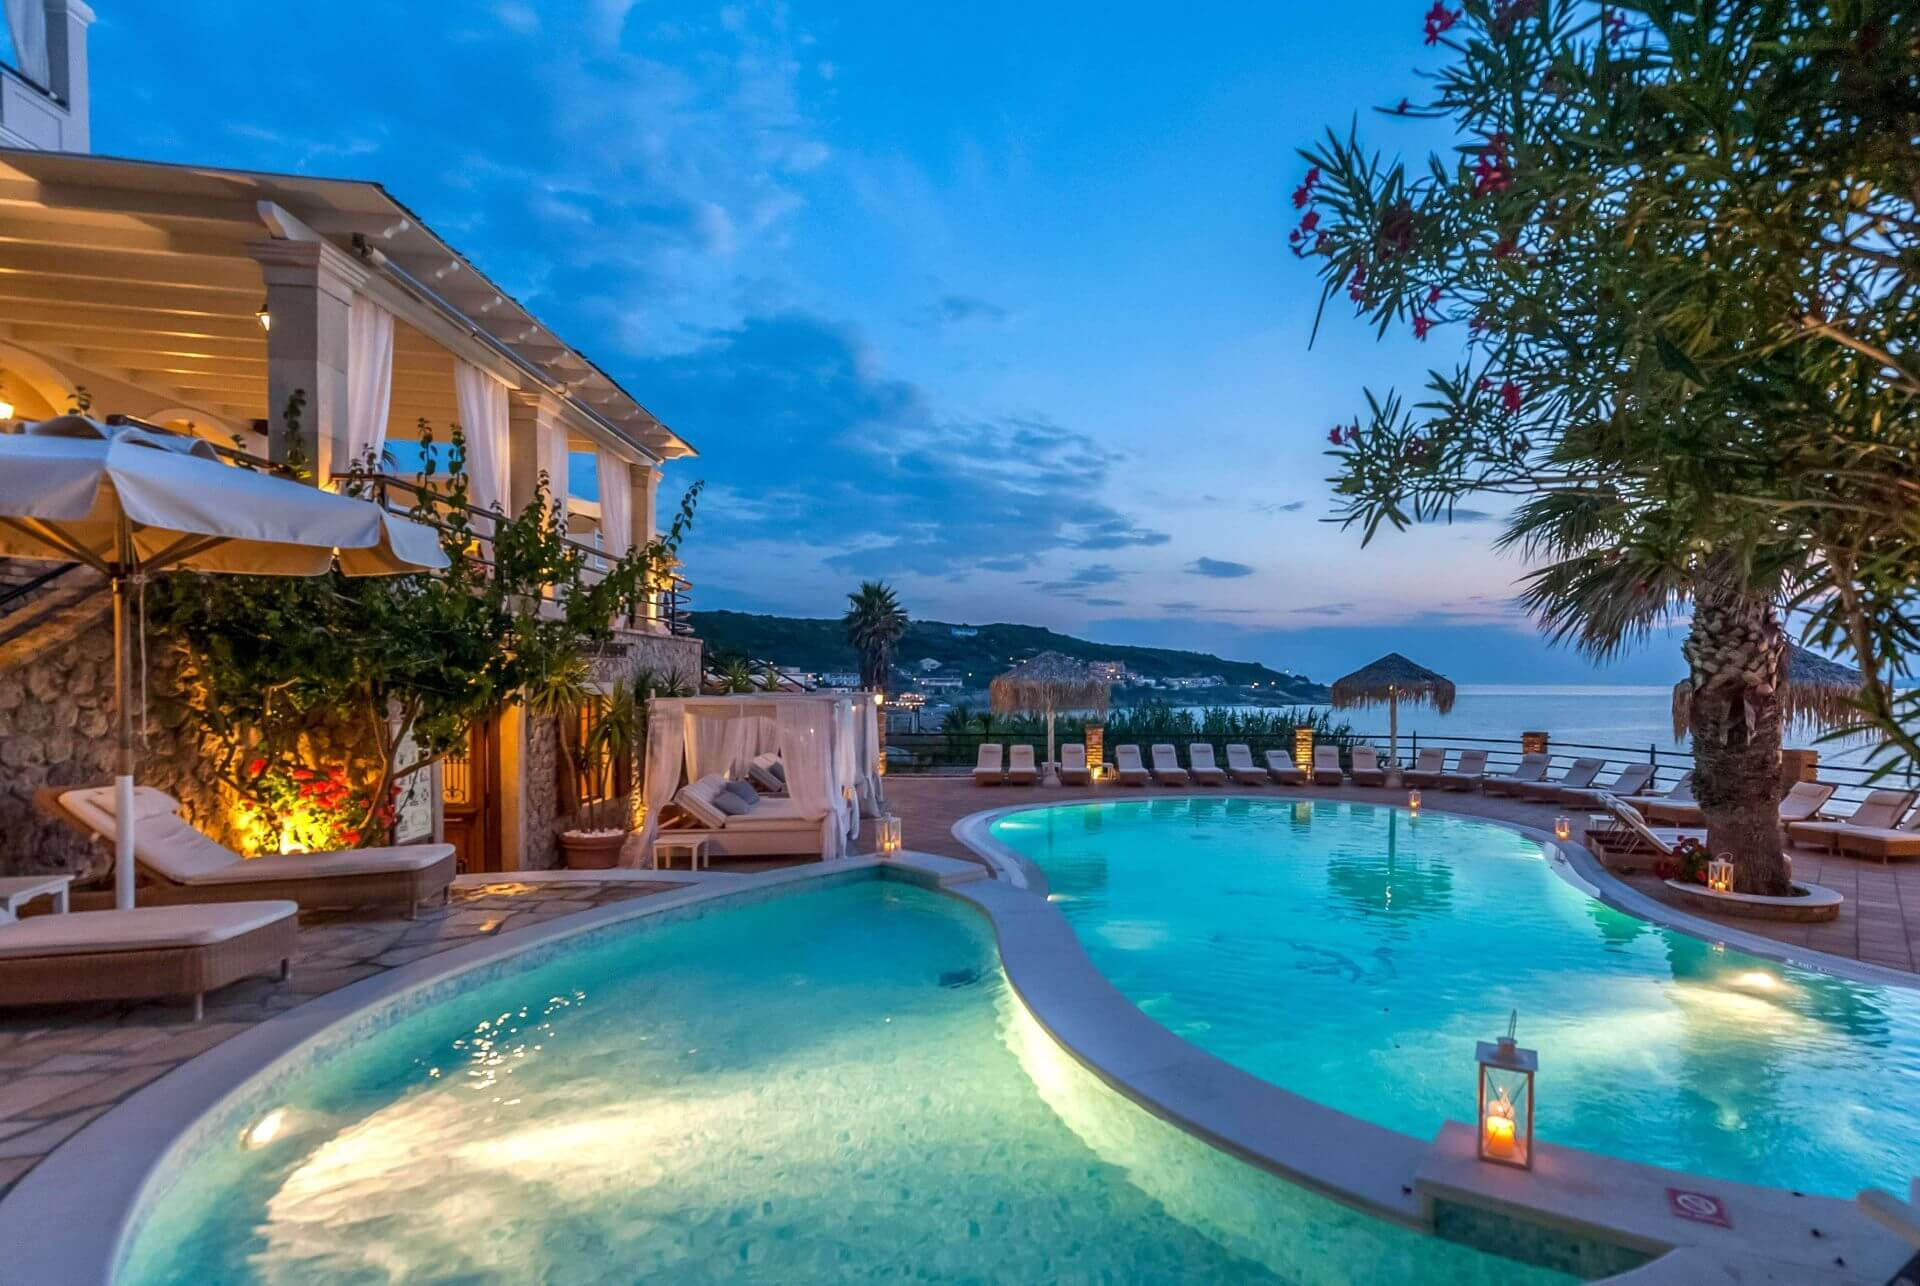 Accommodation and hotels in Corfu